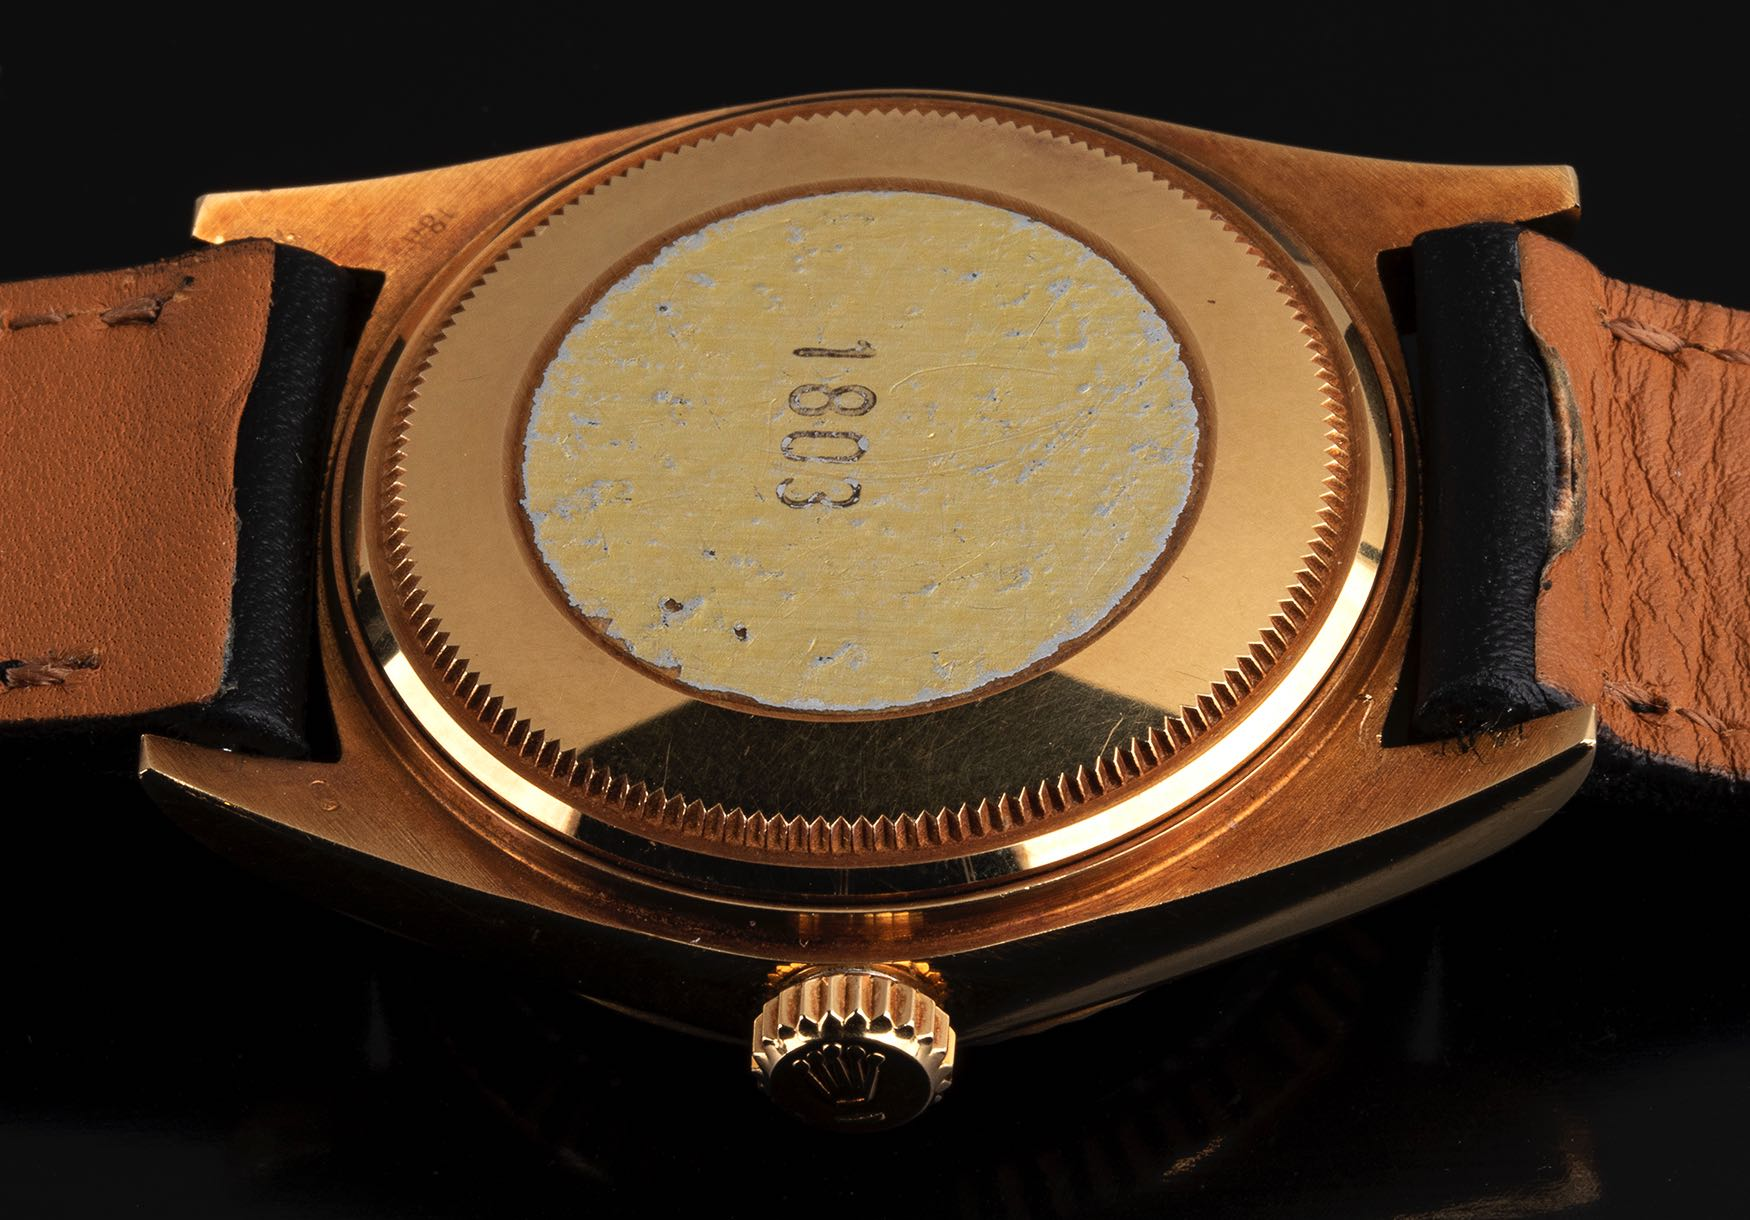 Rolex Day Date ref 1803 like NOS yellow gold 1972 - Image 4 of 4